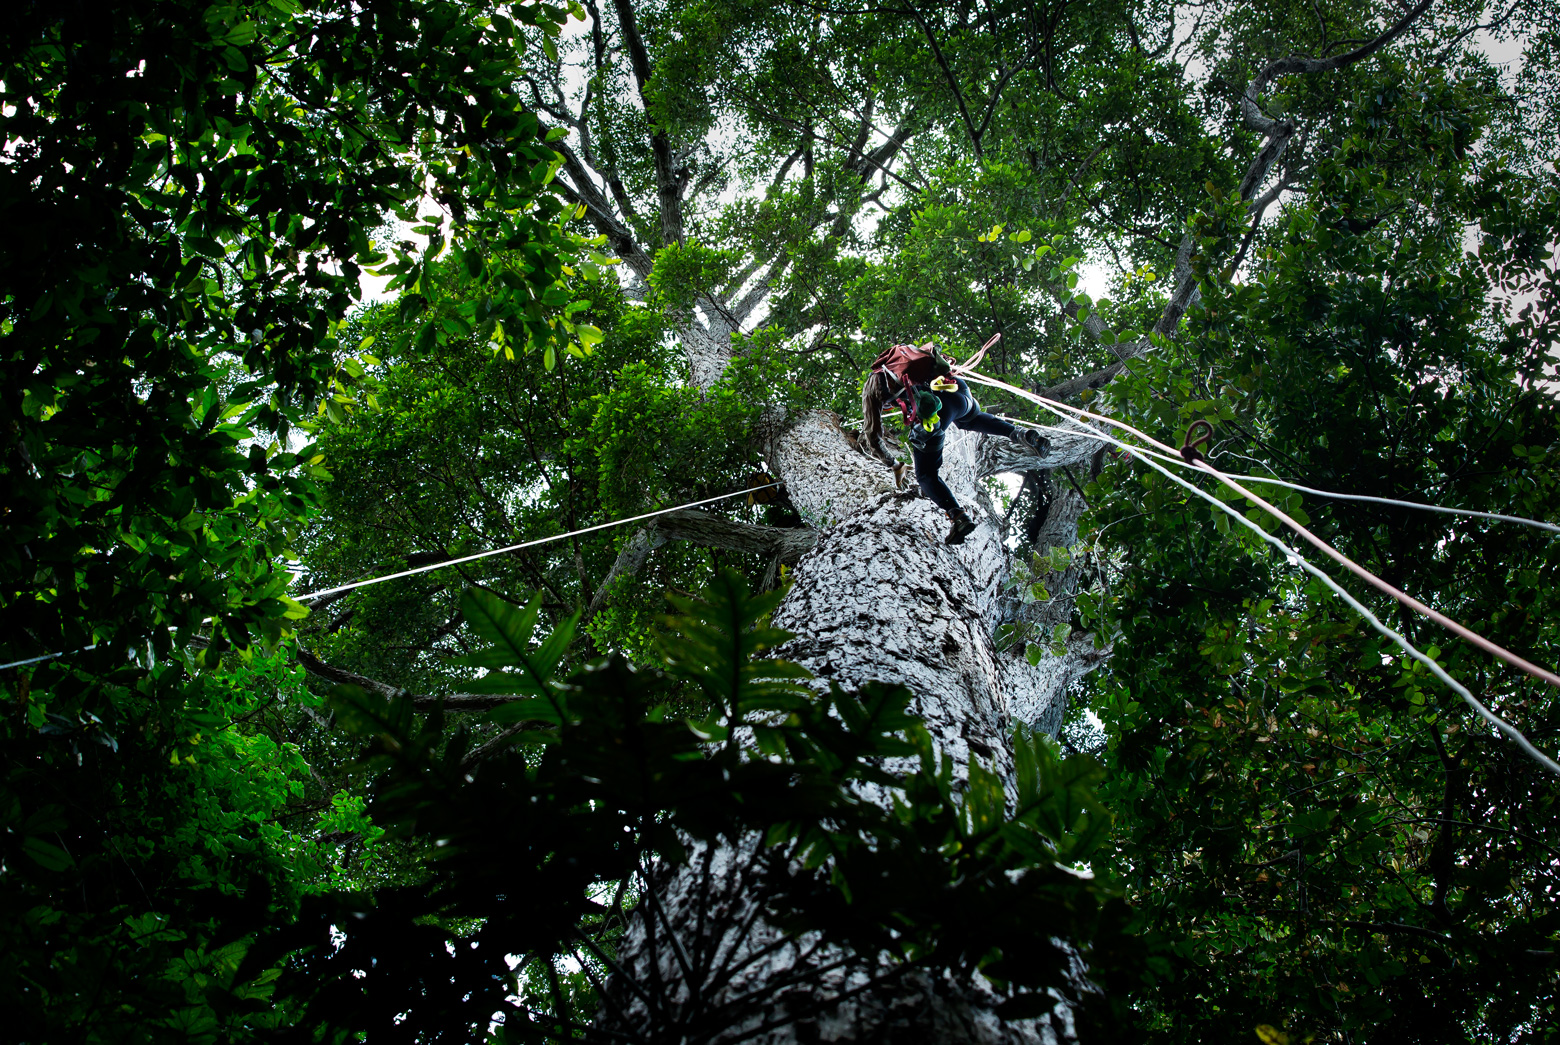 Valeriy Ivanov scales a tree in the Amazon